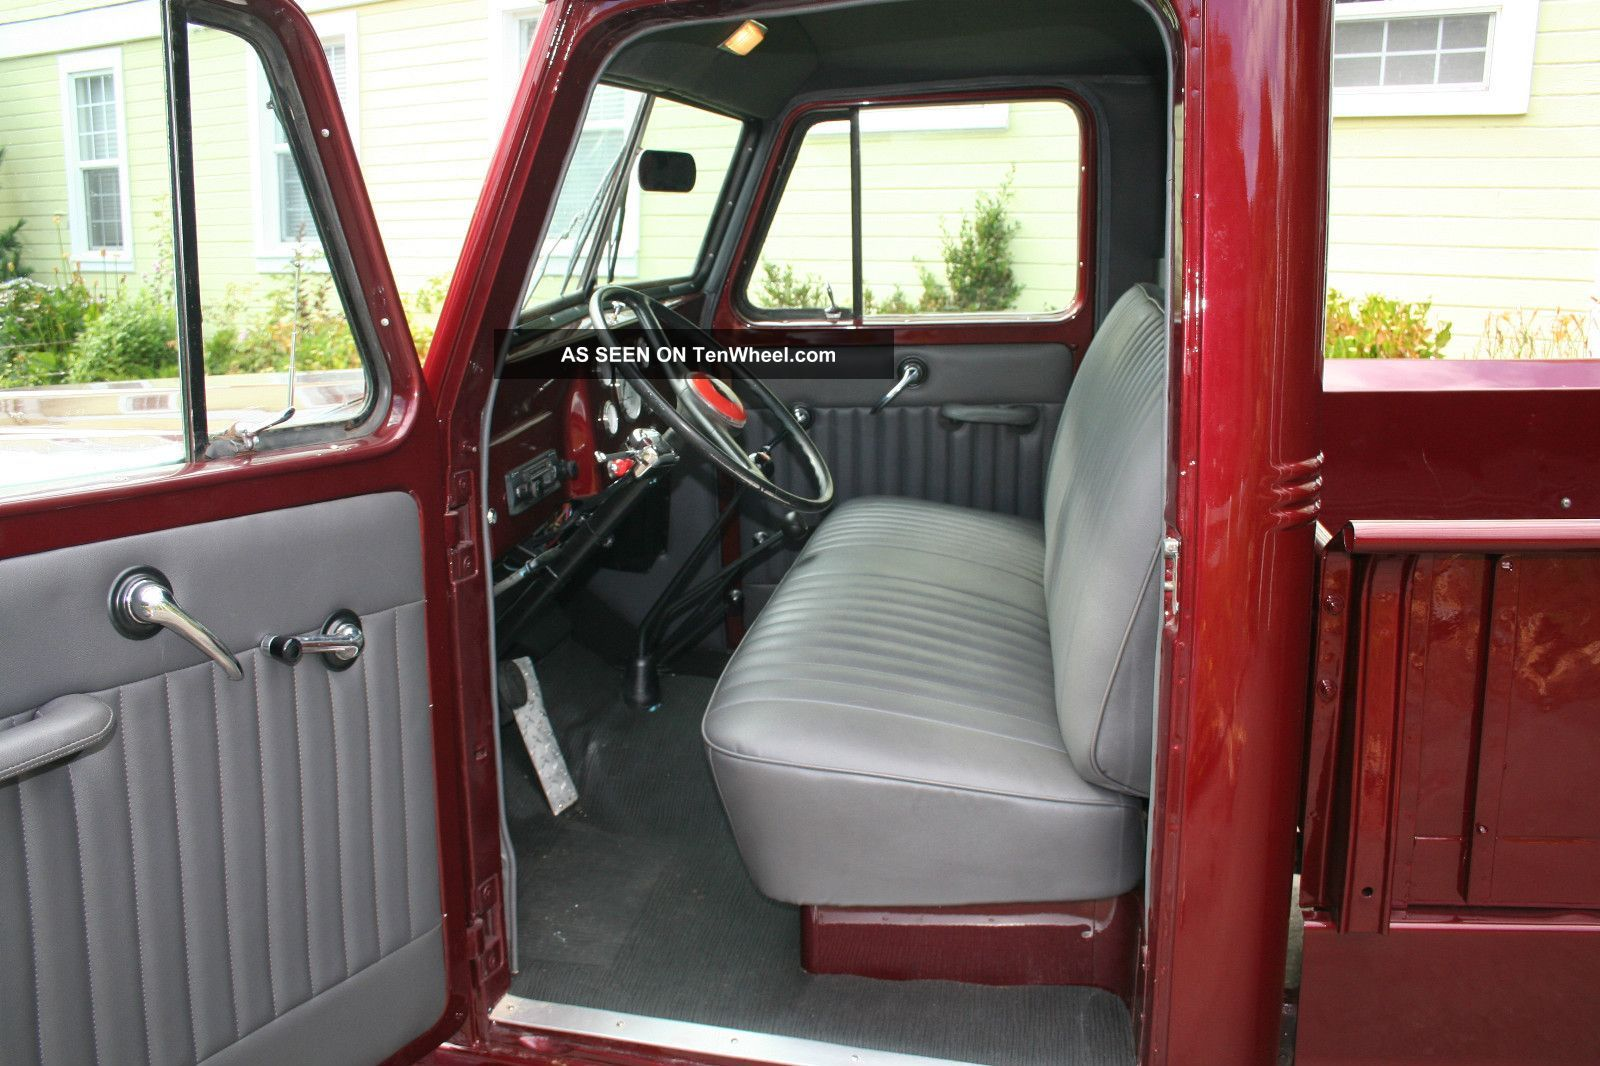 1955 Willys Pickup Truck 4wd Paint Interior Some Mechanicals 2 Lgw Jpg 1 600 1 066 Pixels Willys Truck Interior Interior